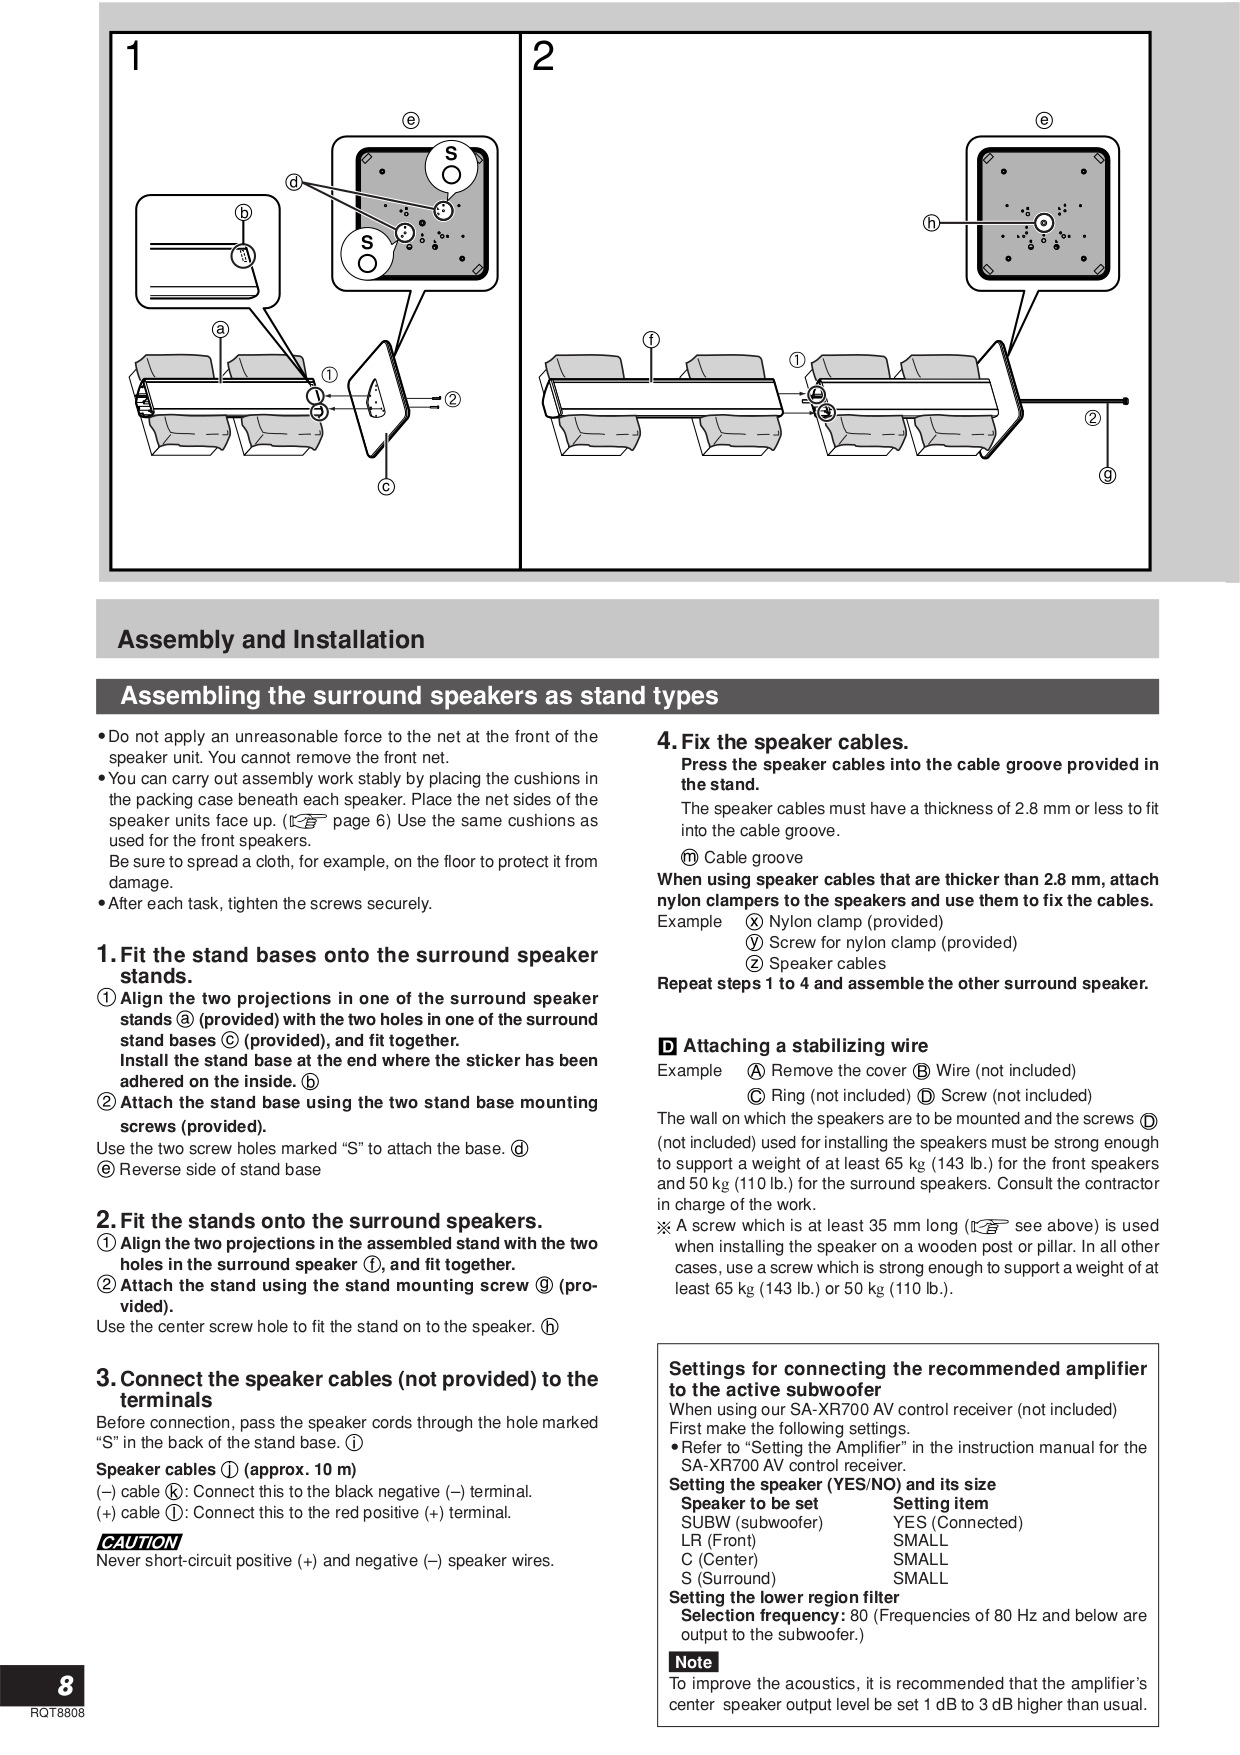 PDF manual for Panasonic Speaker System SB-TP1000